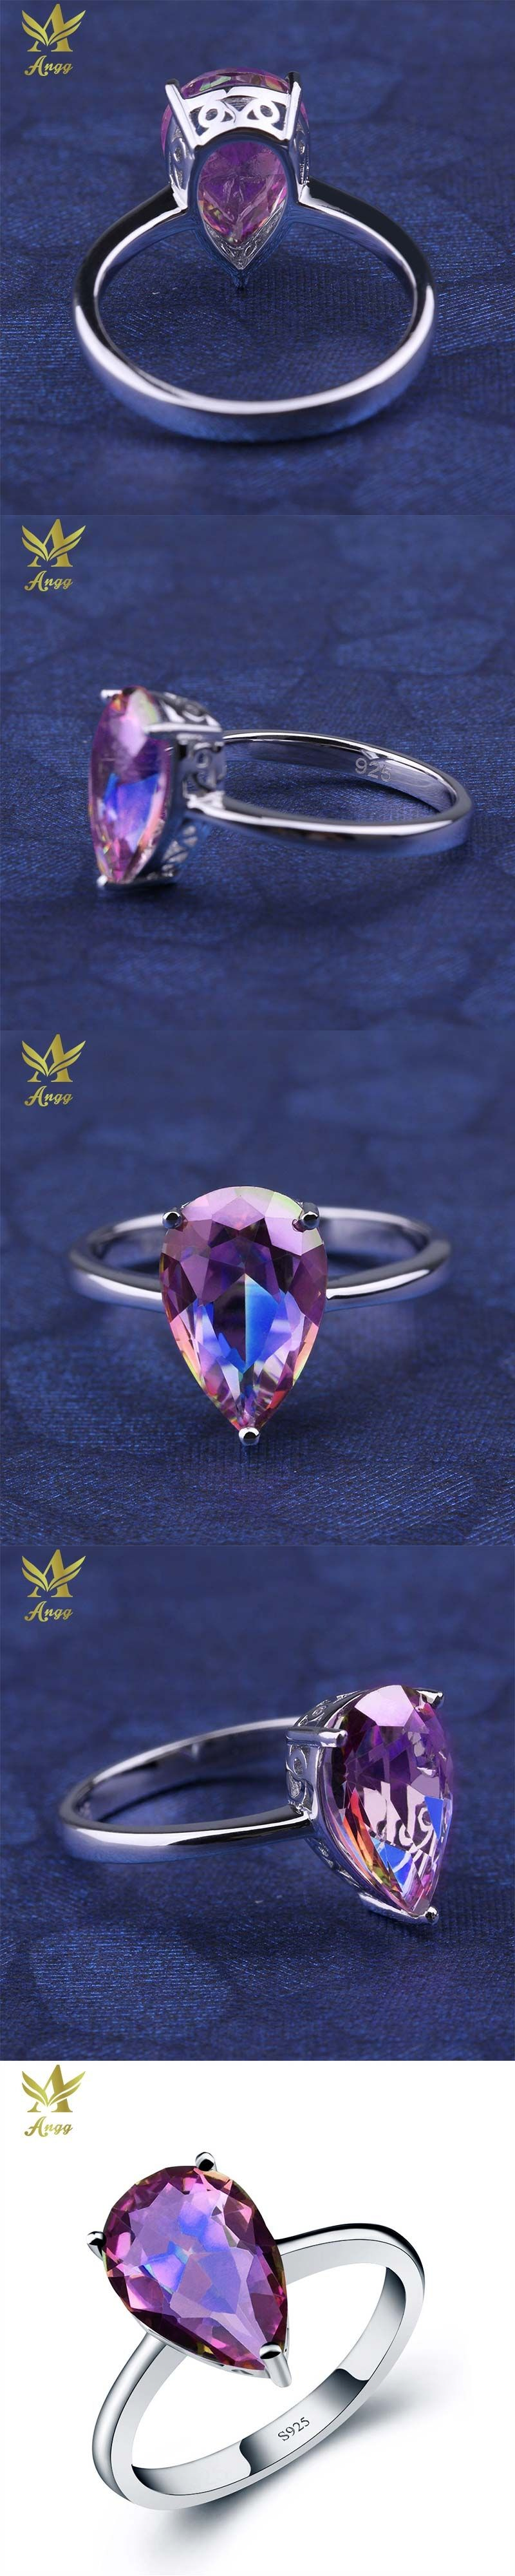 topaz chinaprices fire green fashion opal goods silver red for mystic net rings catalog zircon ring jewelry and wedding stamped chinese search